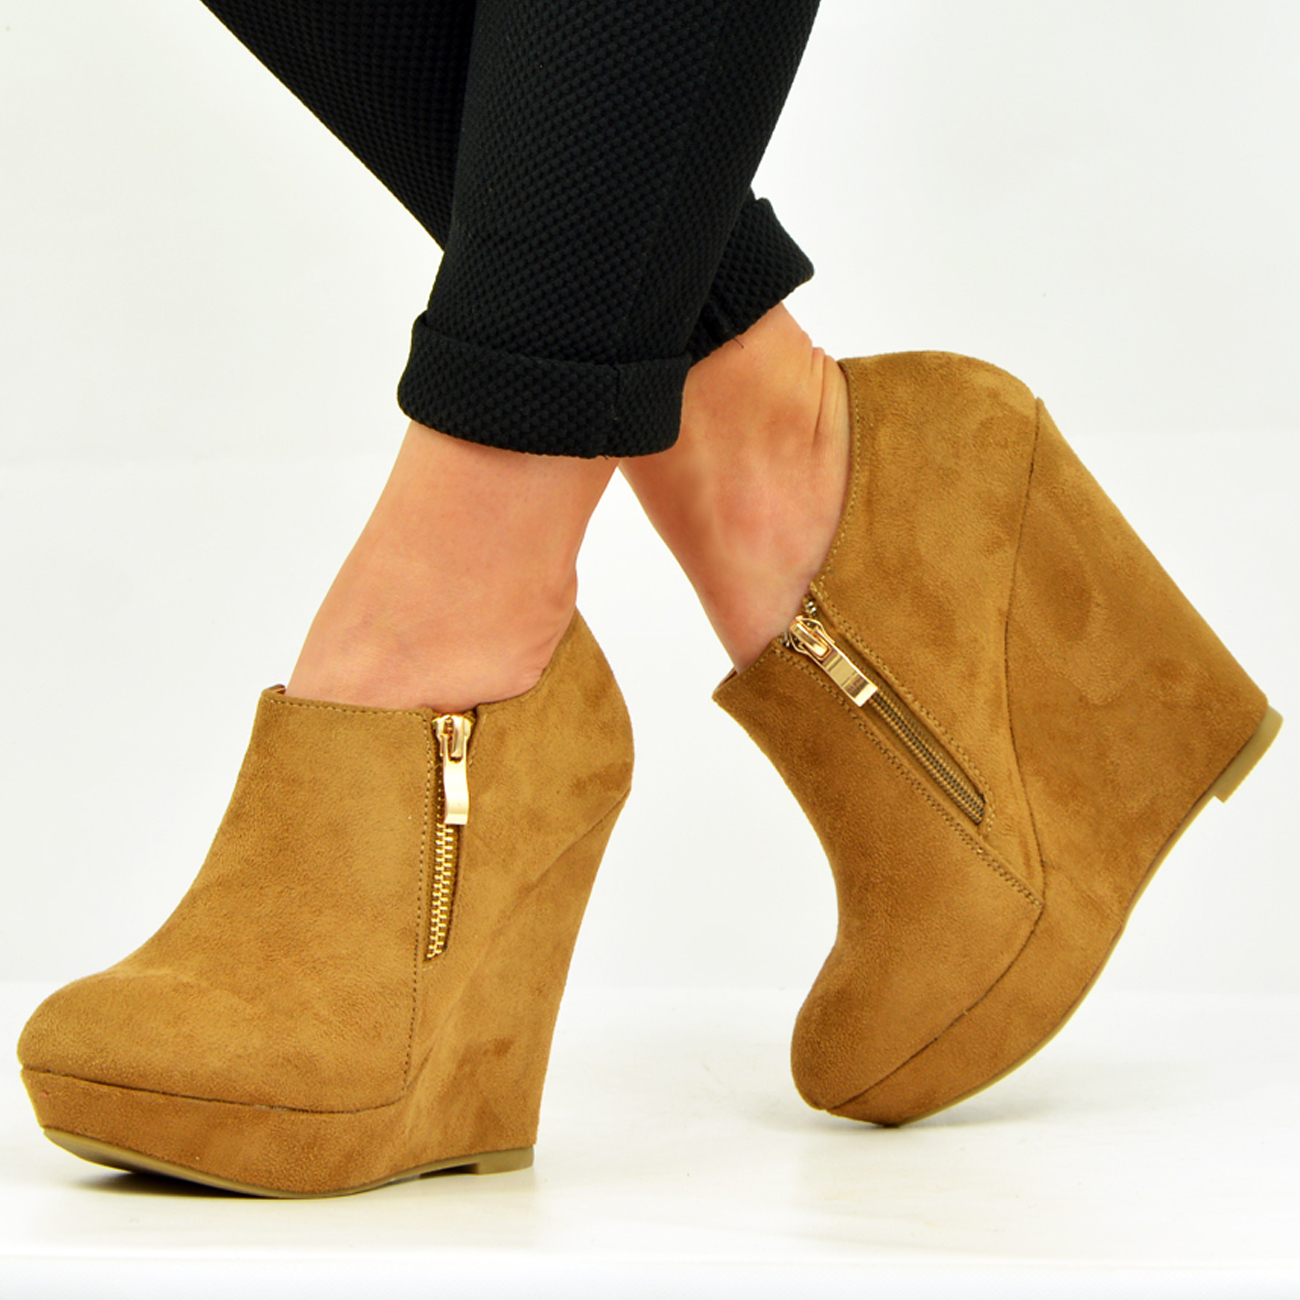 ... Shoes Size Uk 3-8; Picture 2 of 5; Picture 3 of 5 ...